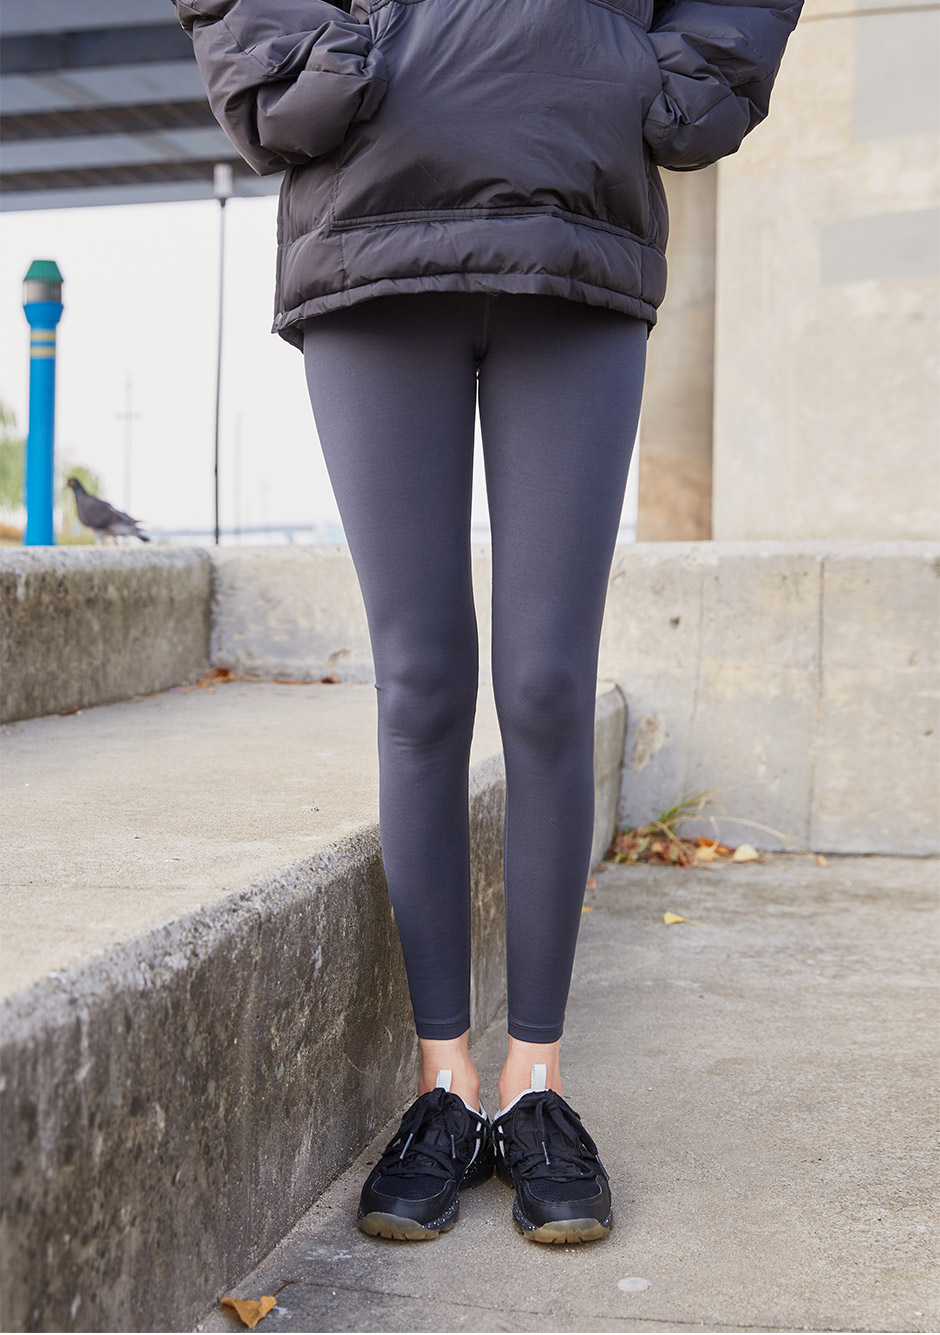 //cdn.nhanh.vn/cdn/store/29770/psCT/20190108/11027736/_5Kg_Perfect_Line_Leggings_Plus_(2019_22_80).jpg